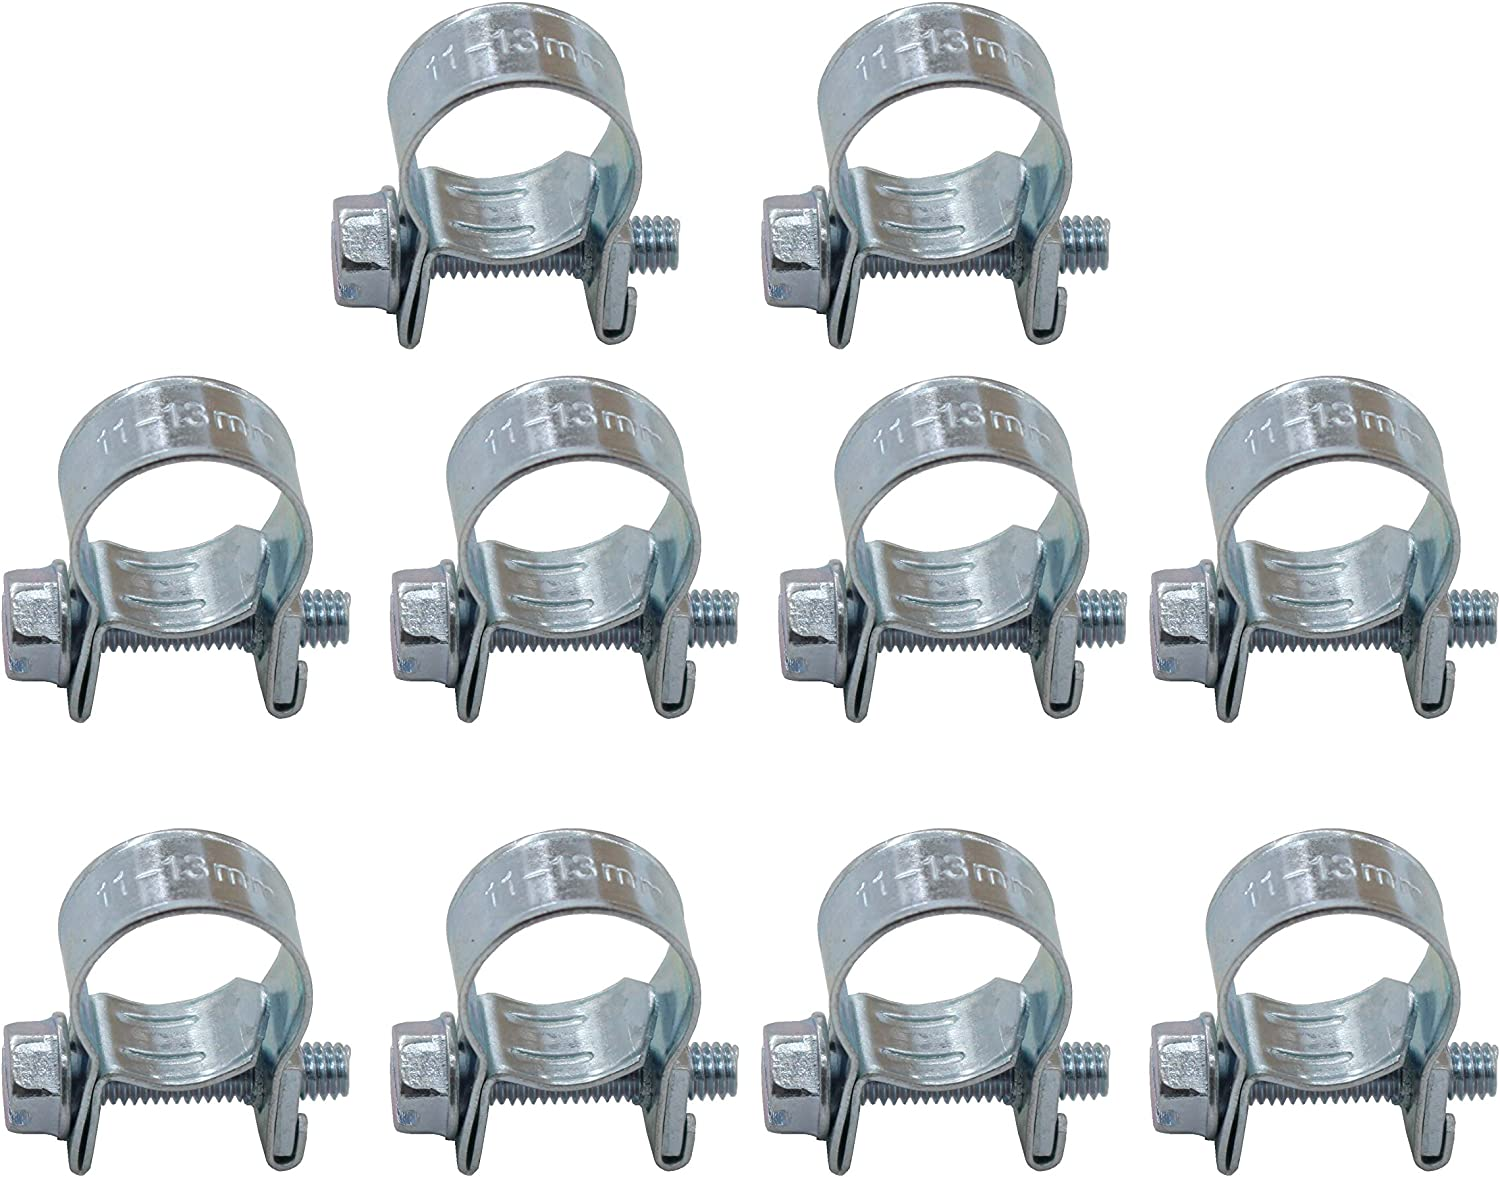 Stainless Steel 2 or 10 Packs Performance Mini Fuel Line Hose Clamps Clips